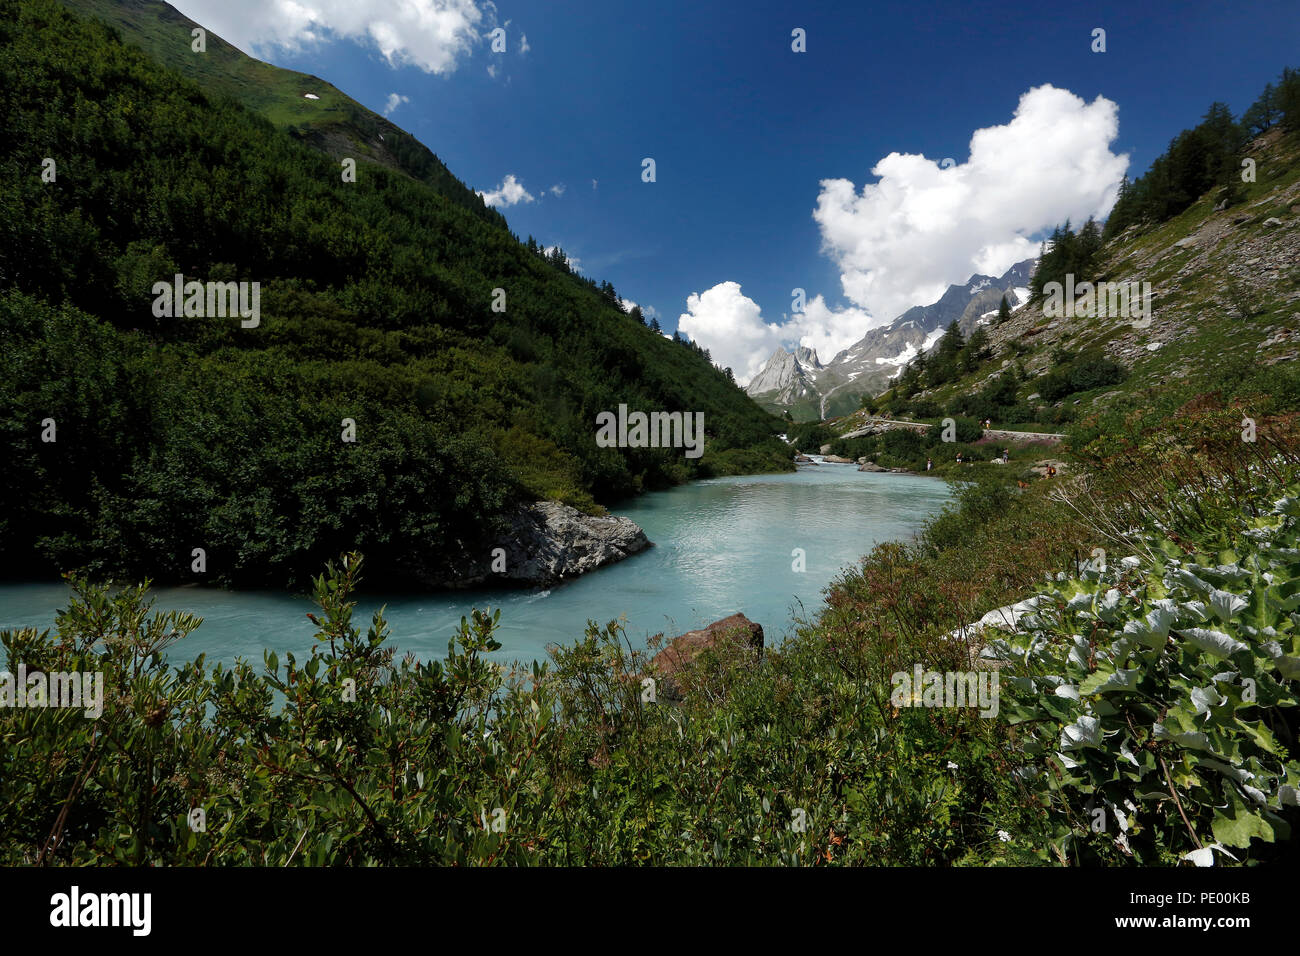 Courmayeur, Aosta Valley, Alpes of Italy : Dora Veny river and the Pyramides Calcaires on the background in a summer morning. - Stock Image